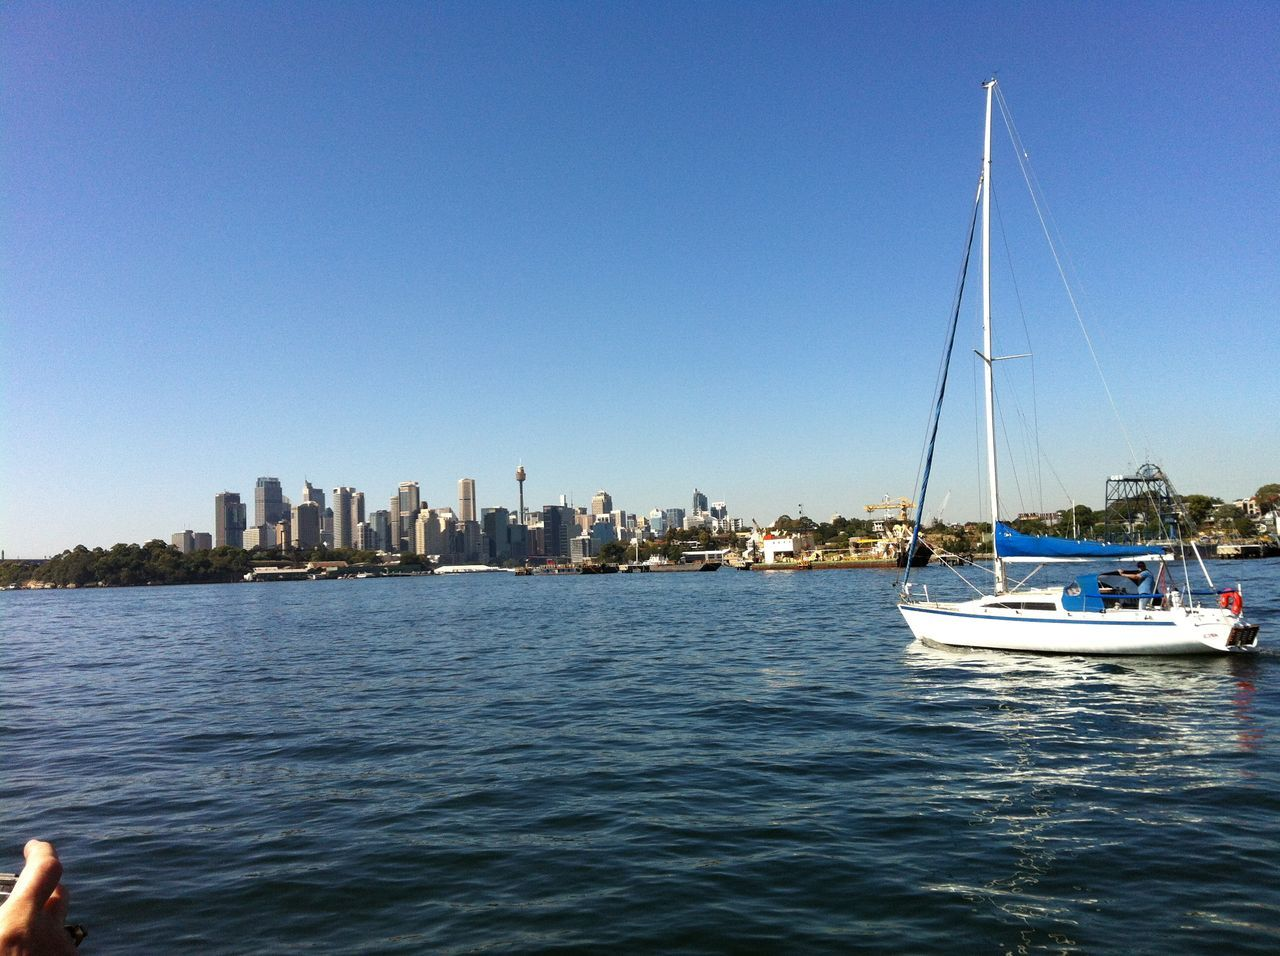 Photos of Sydney, Australia 2012 Architecture Building Exterior City Cityscape Clear Sky Day Mast Mode Of Transport Nature Nautical Vessel No People Outdoors Sailboat Sailing Sea Sky Skyscraper Transportation Urban Skyline Water Waterfront Yacht Yachting